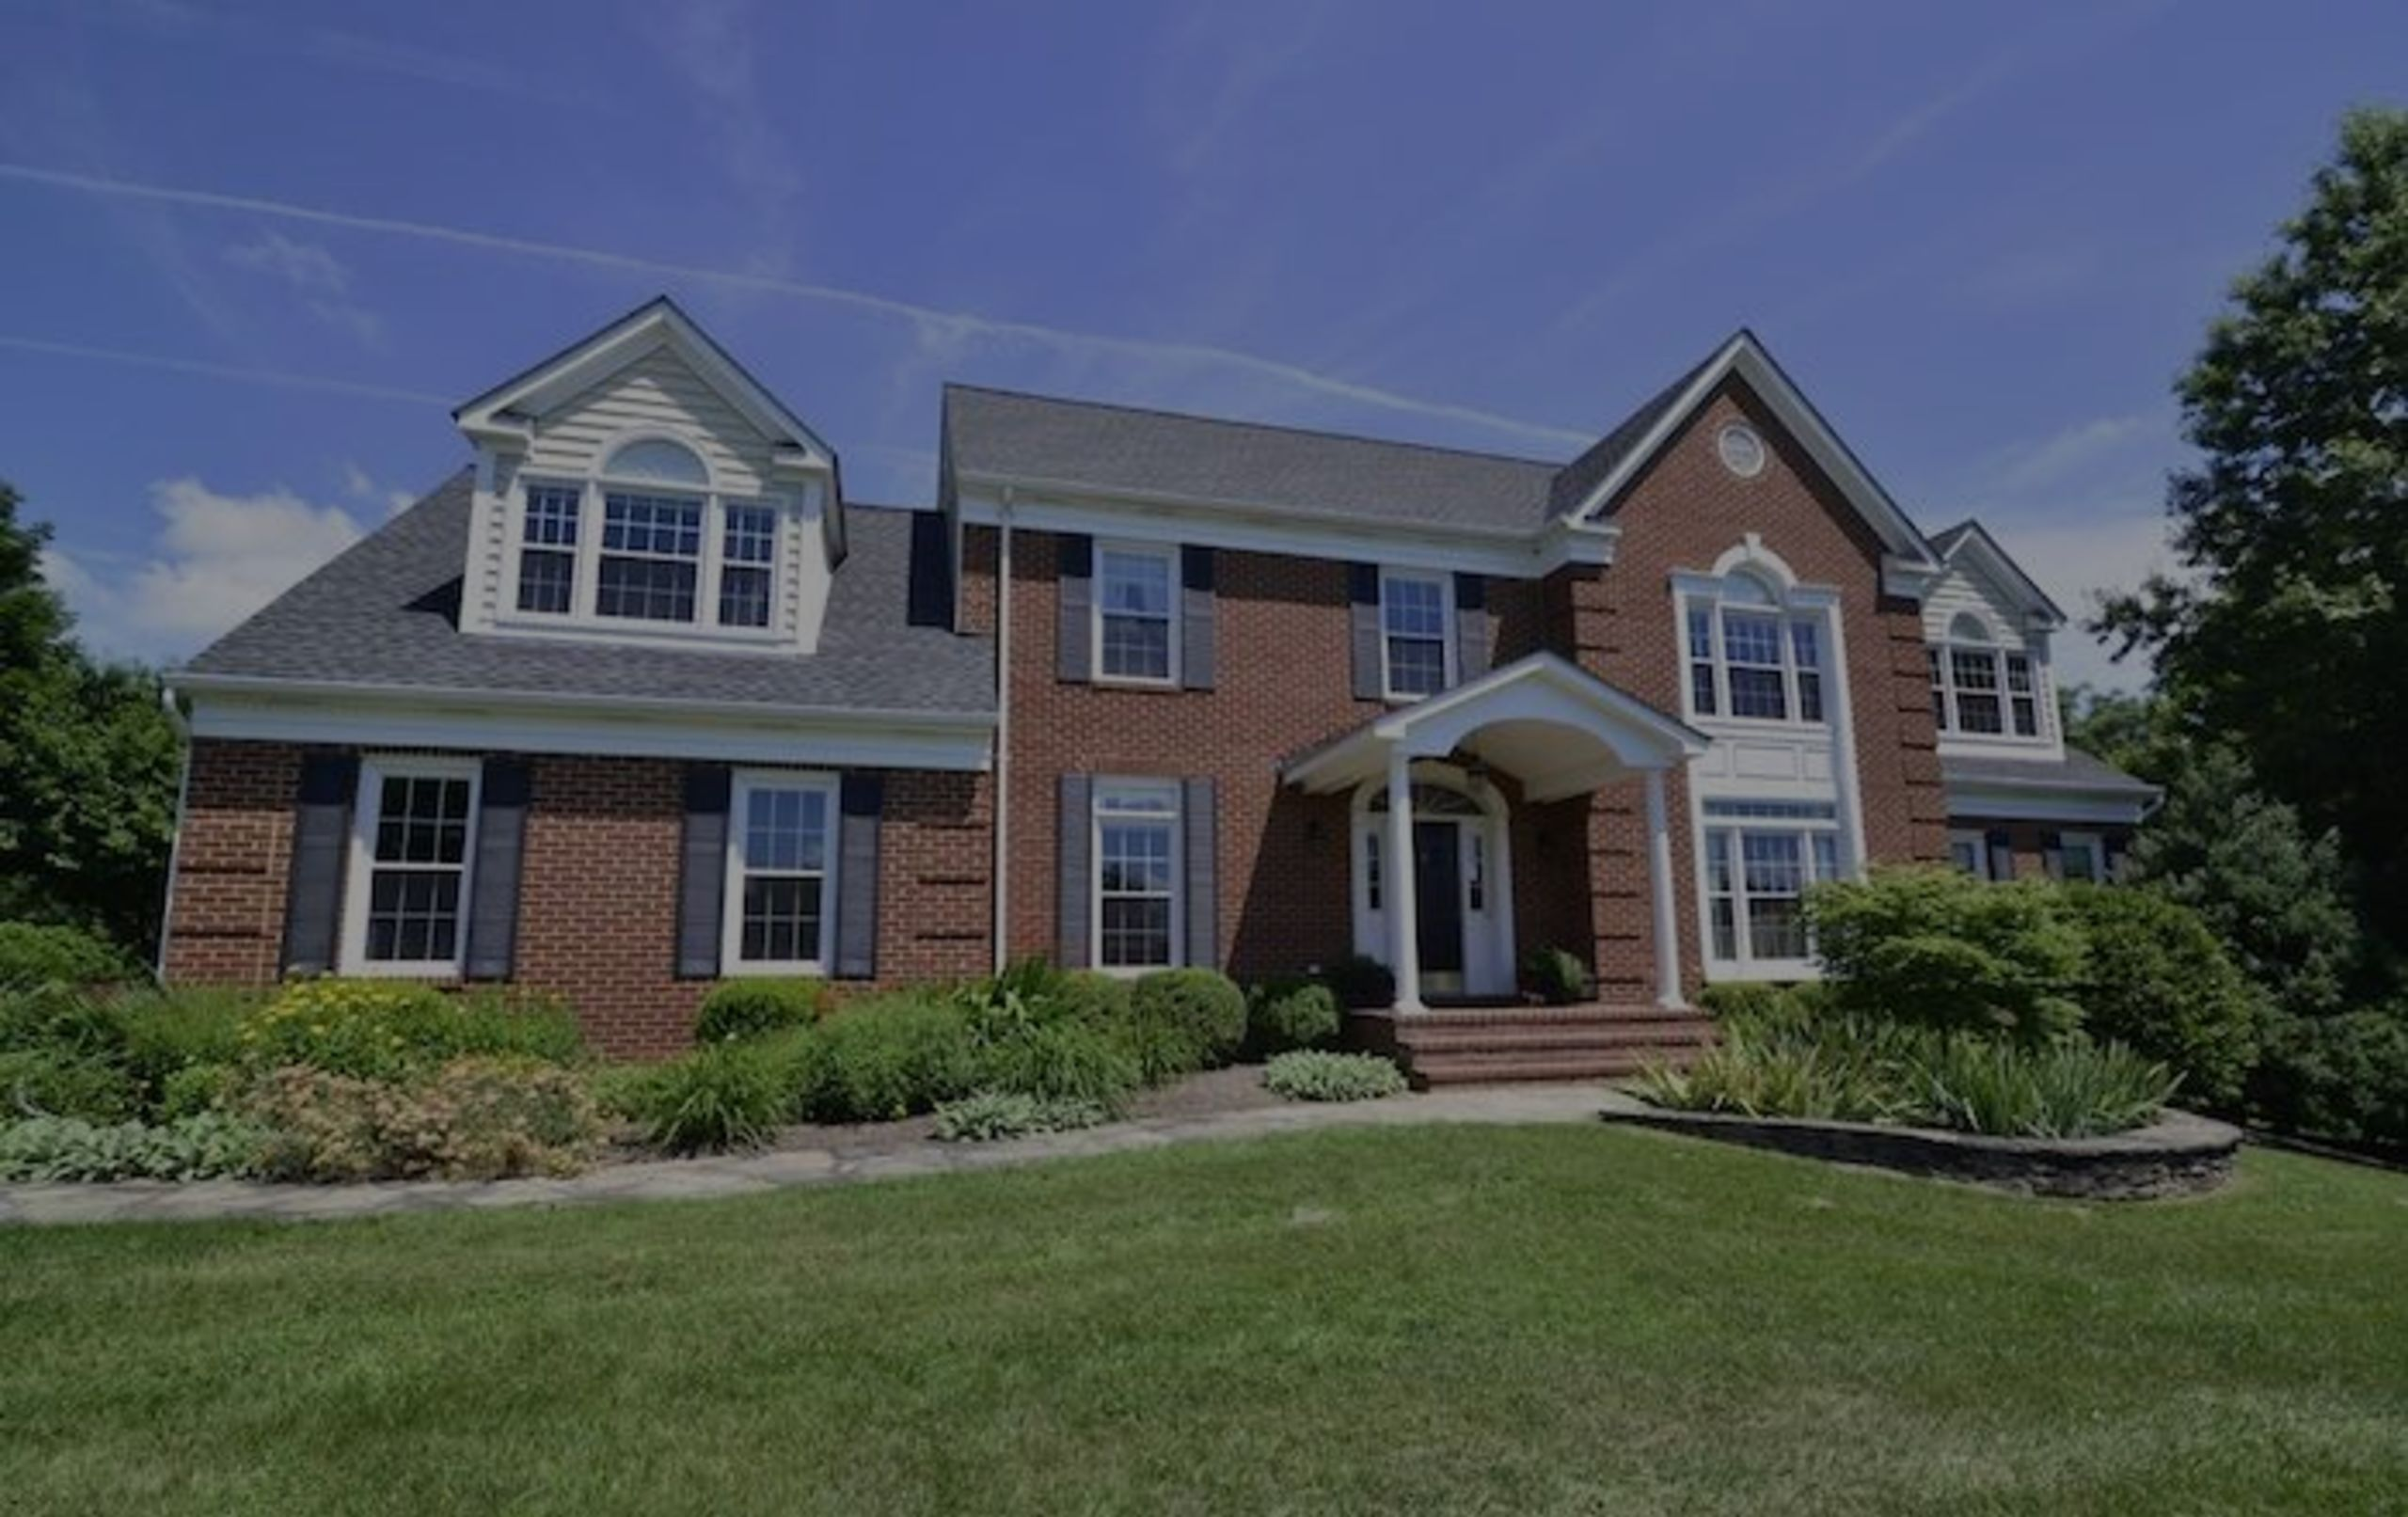 Just Listed | Stunning & Spacious Single-Family Home in Purcellville